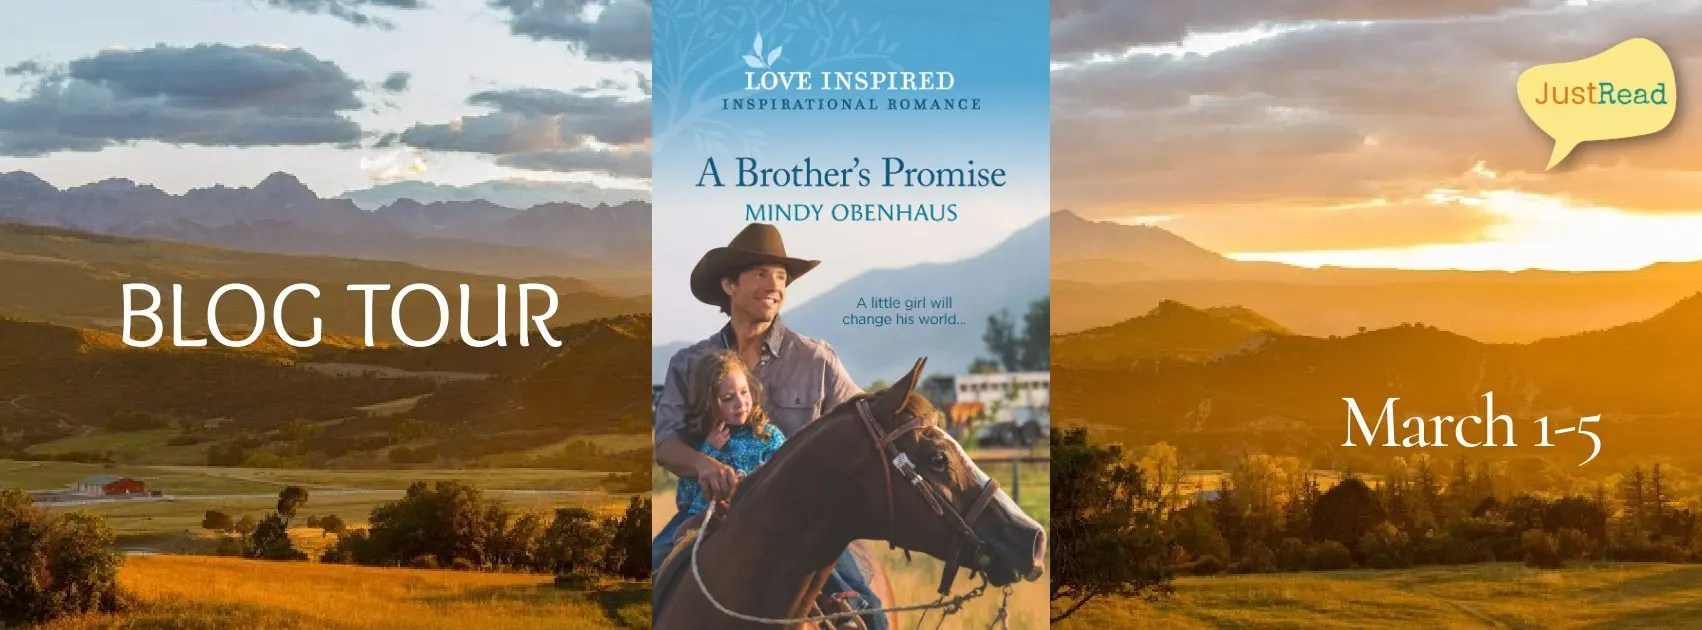 Welcome to the A Brother's Promise Blog Tour & Giveaway!